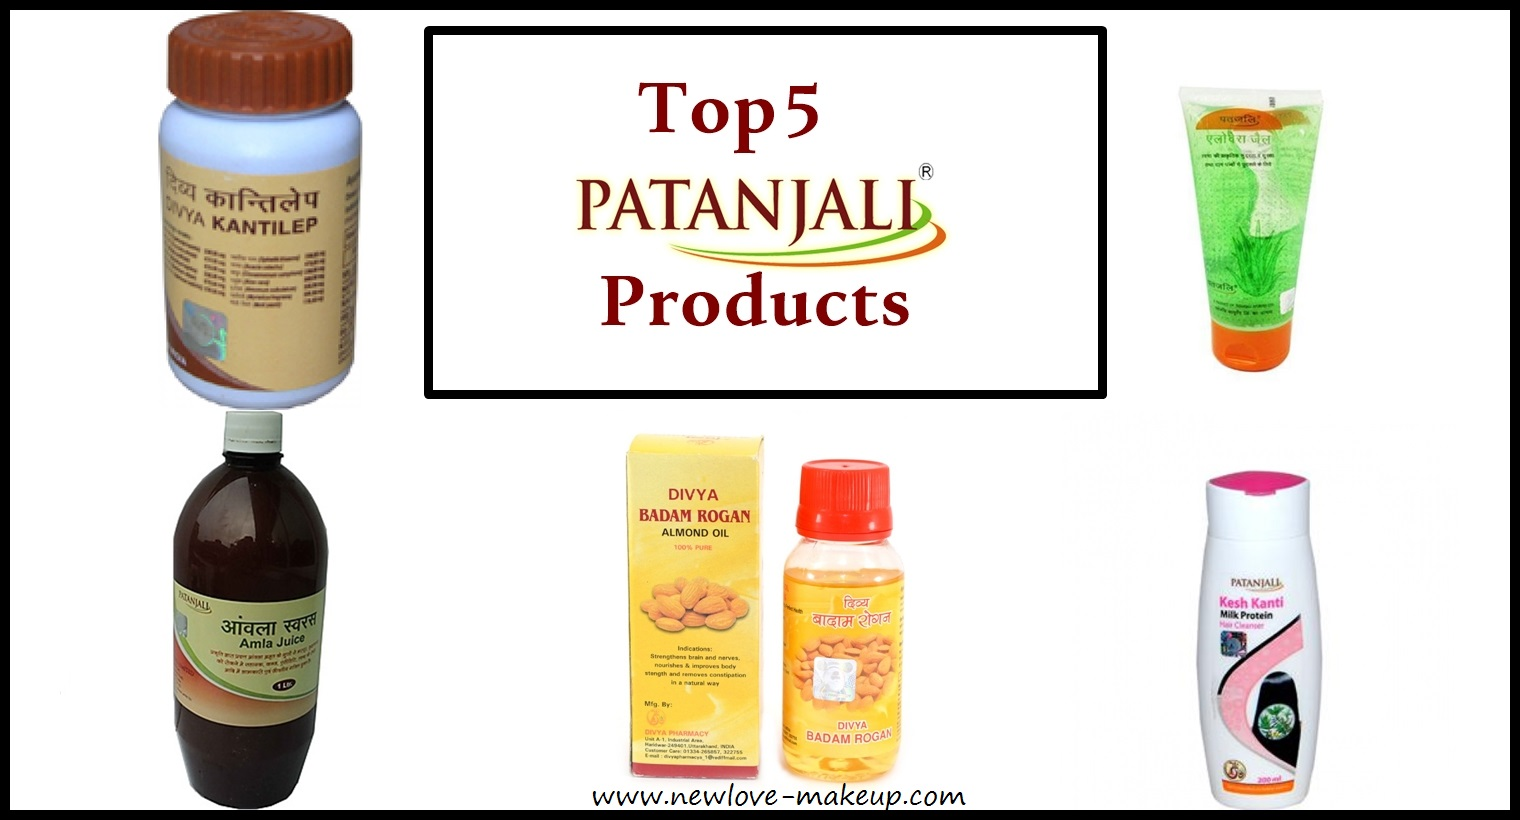 Top 5 Patanjali Products in India | New Love - Makeup